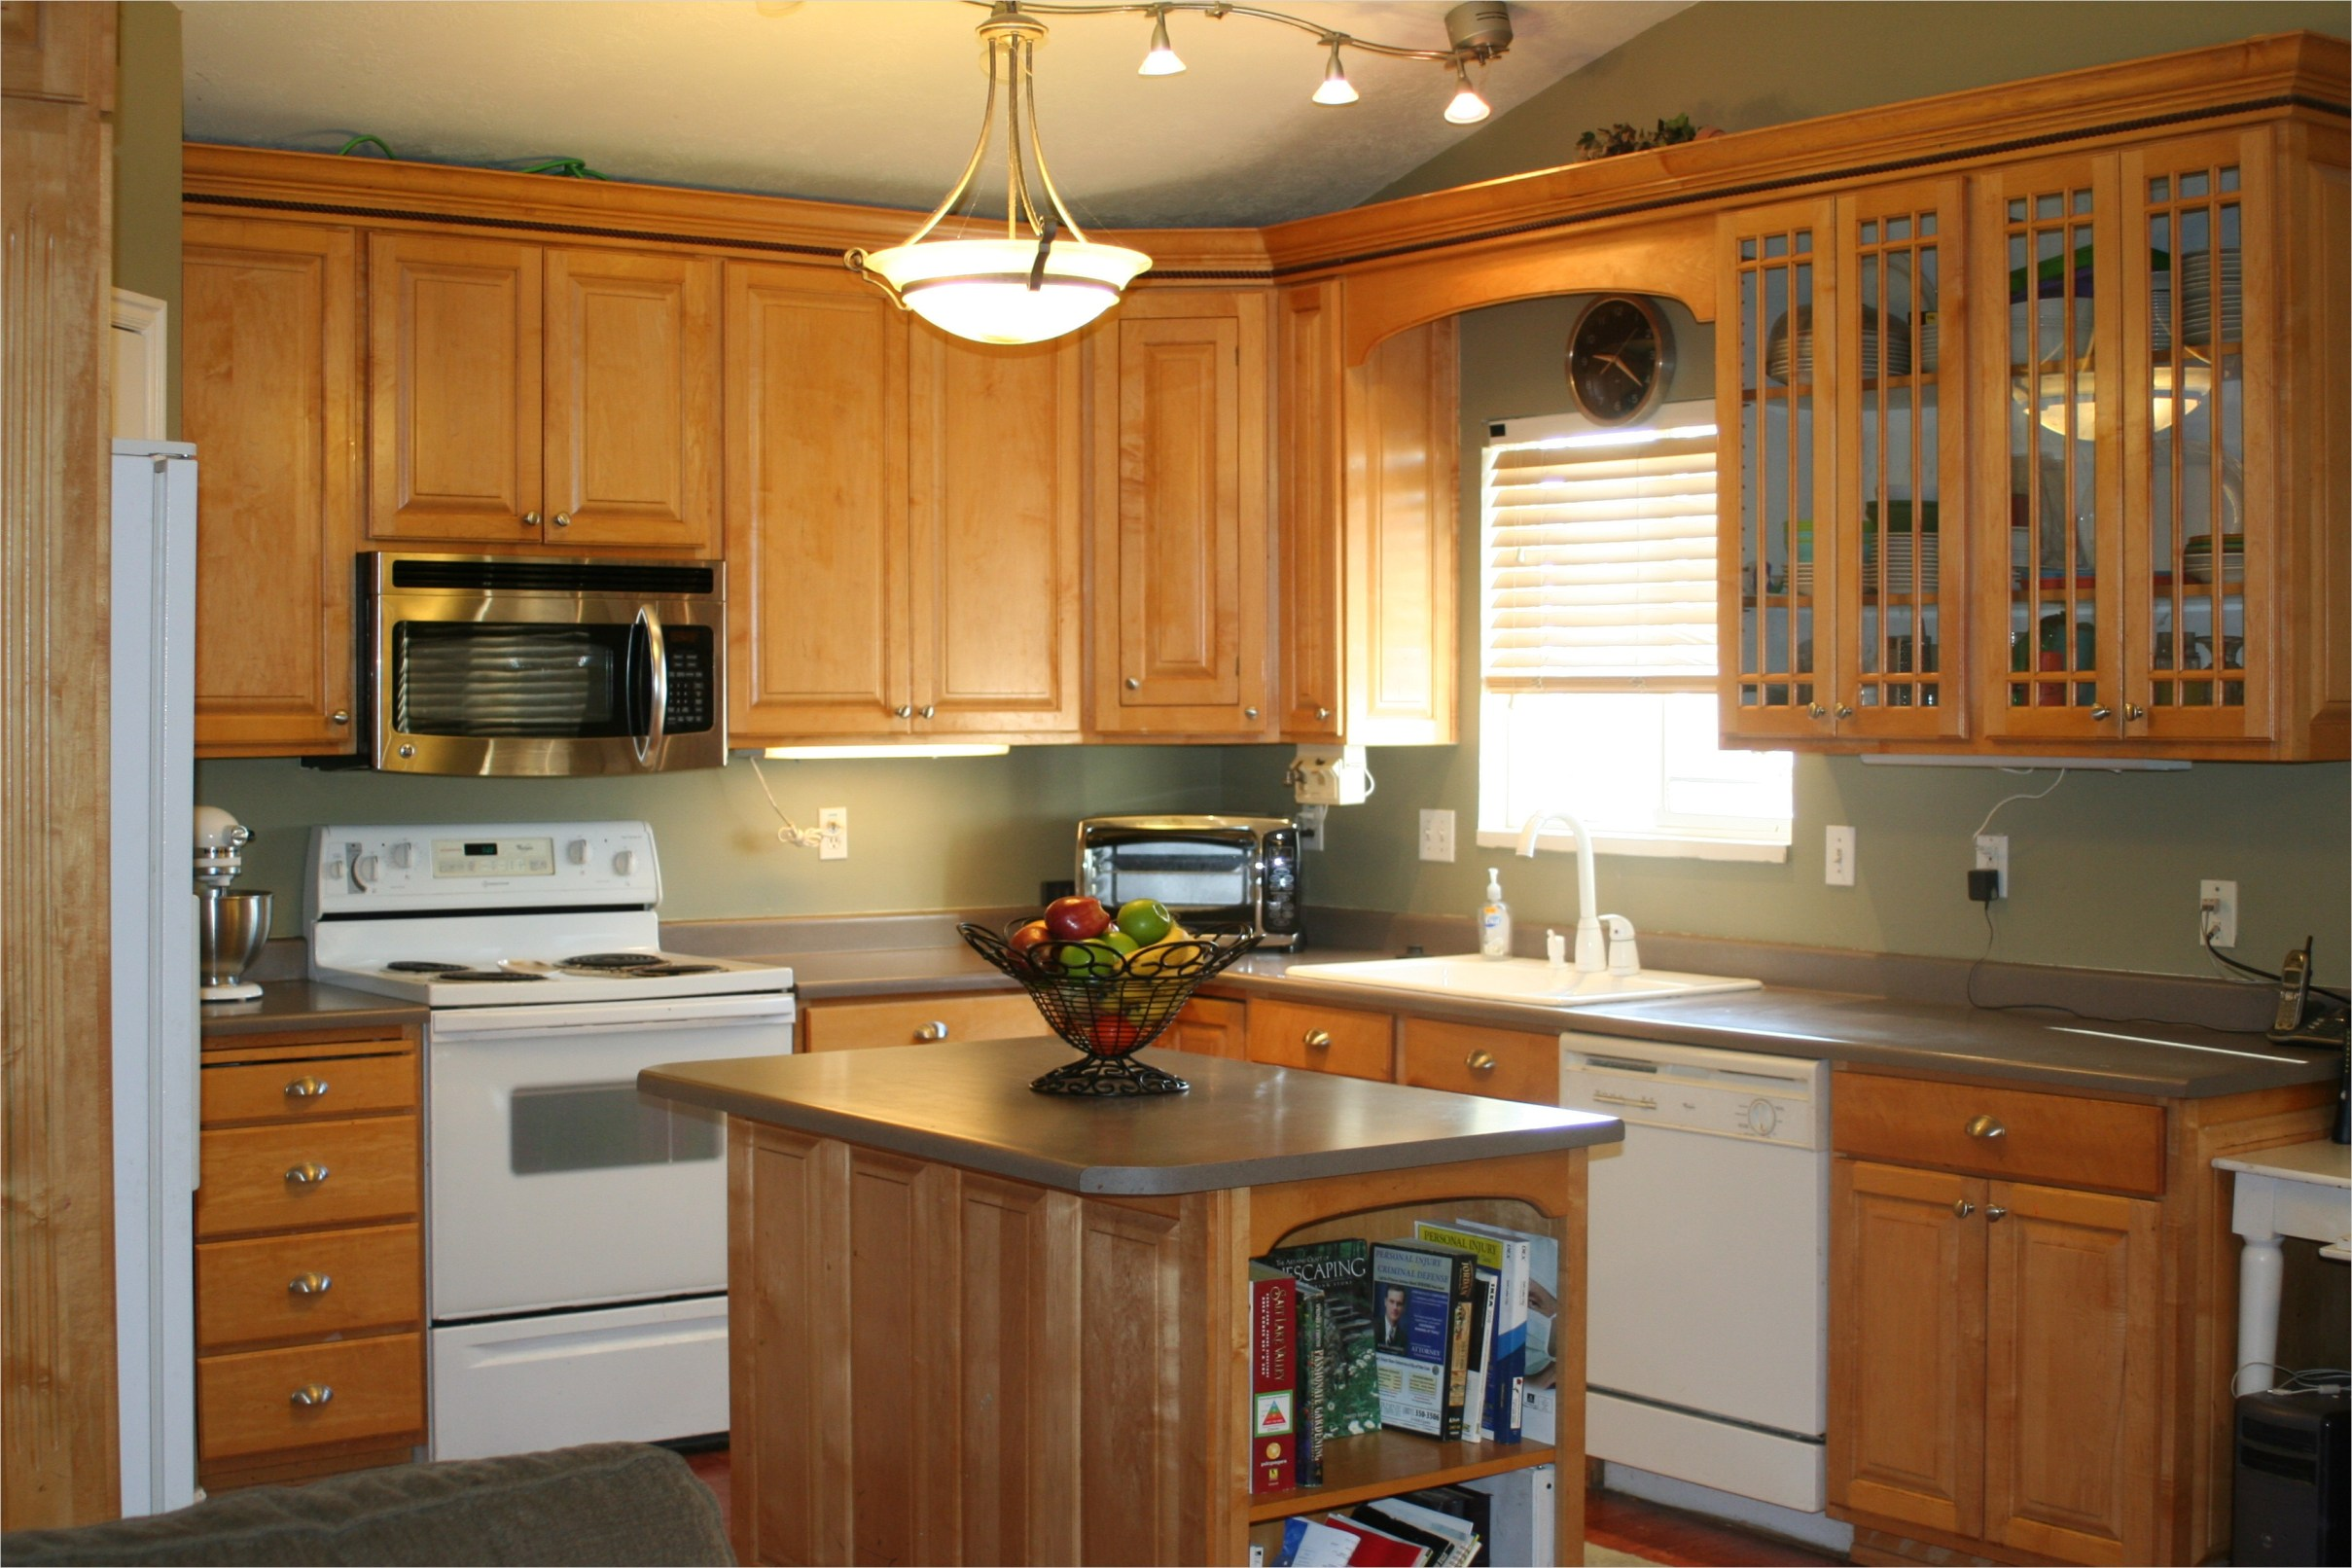 Kitchen with Maple Cabinets Color Ideas 37 Kitchen Lake forest Park Residence 109 Kitchen Color Ideas with Maple Cabinets Ahhualongganggou 5